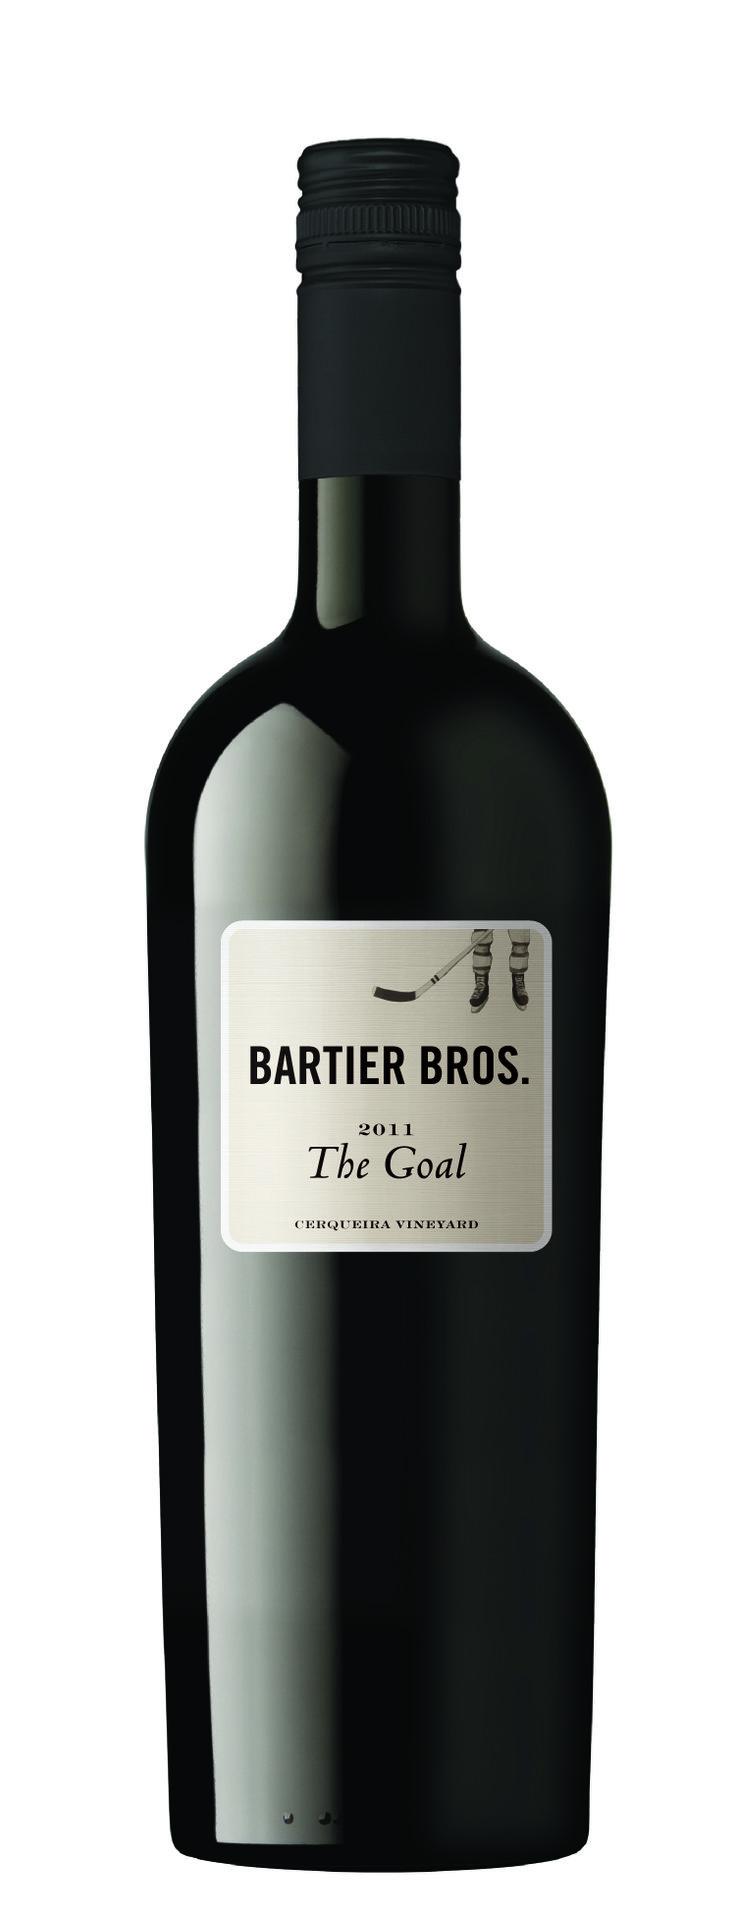 Bartier Bros. - 2011 The Goal - Elegant, bright, and complex. Medium to full bodied with red berry fruit characters, slightly gripping tannins, and just enough acidity to keep the wine refreshing. Classic match for any grilled or braised meat. A bold blend of Merlot and Cabernet Franc  #bcwine #bc #okanagan #wine